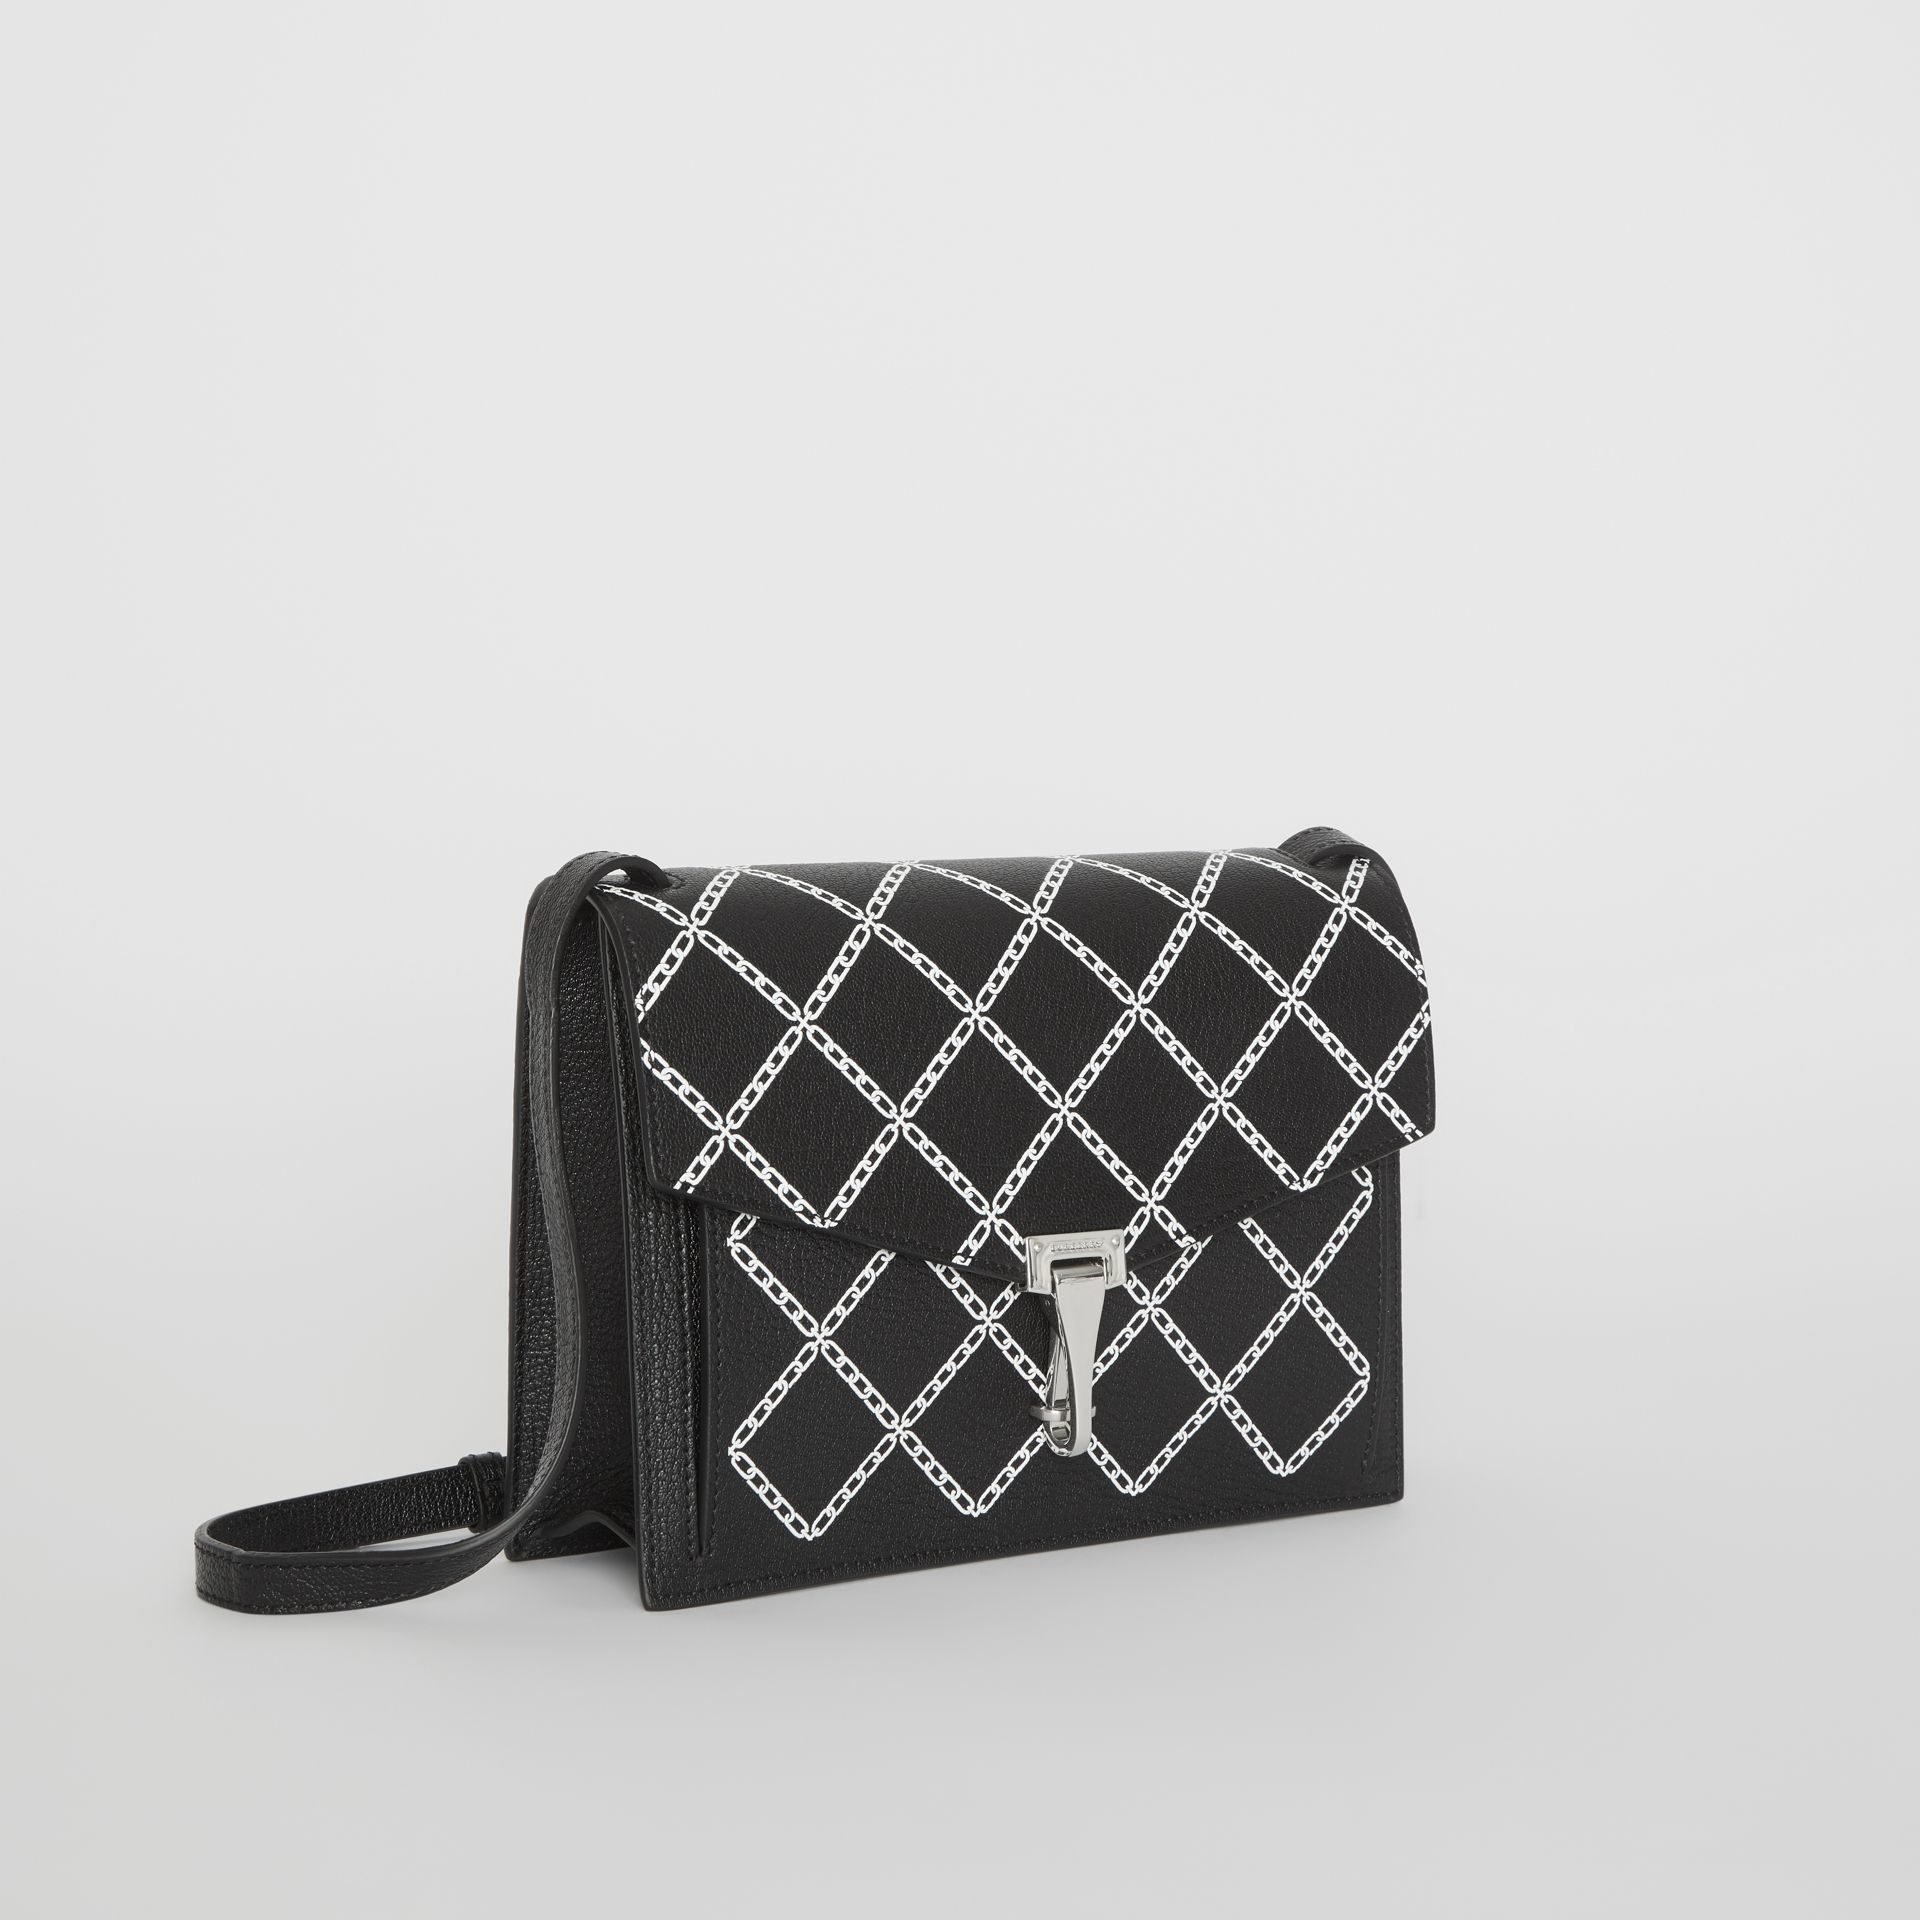 Small Link Print Leather Crossbody Bag in Black - Women | Burberry Hong Kong - gallery image 6